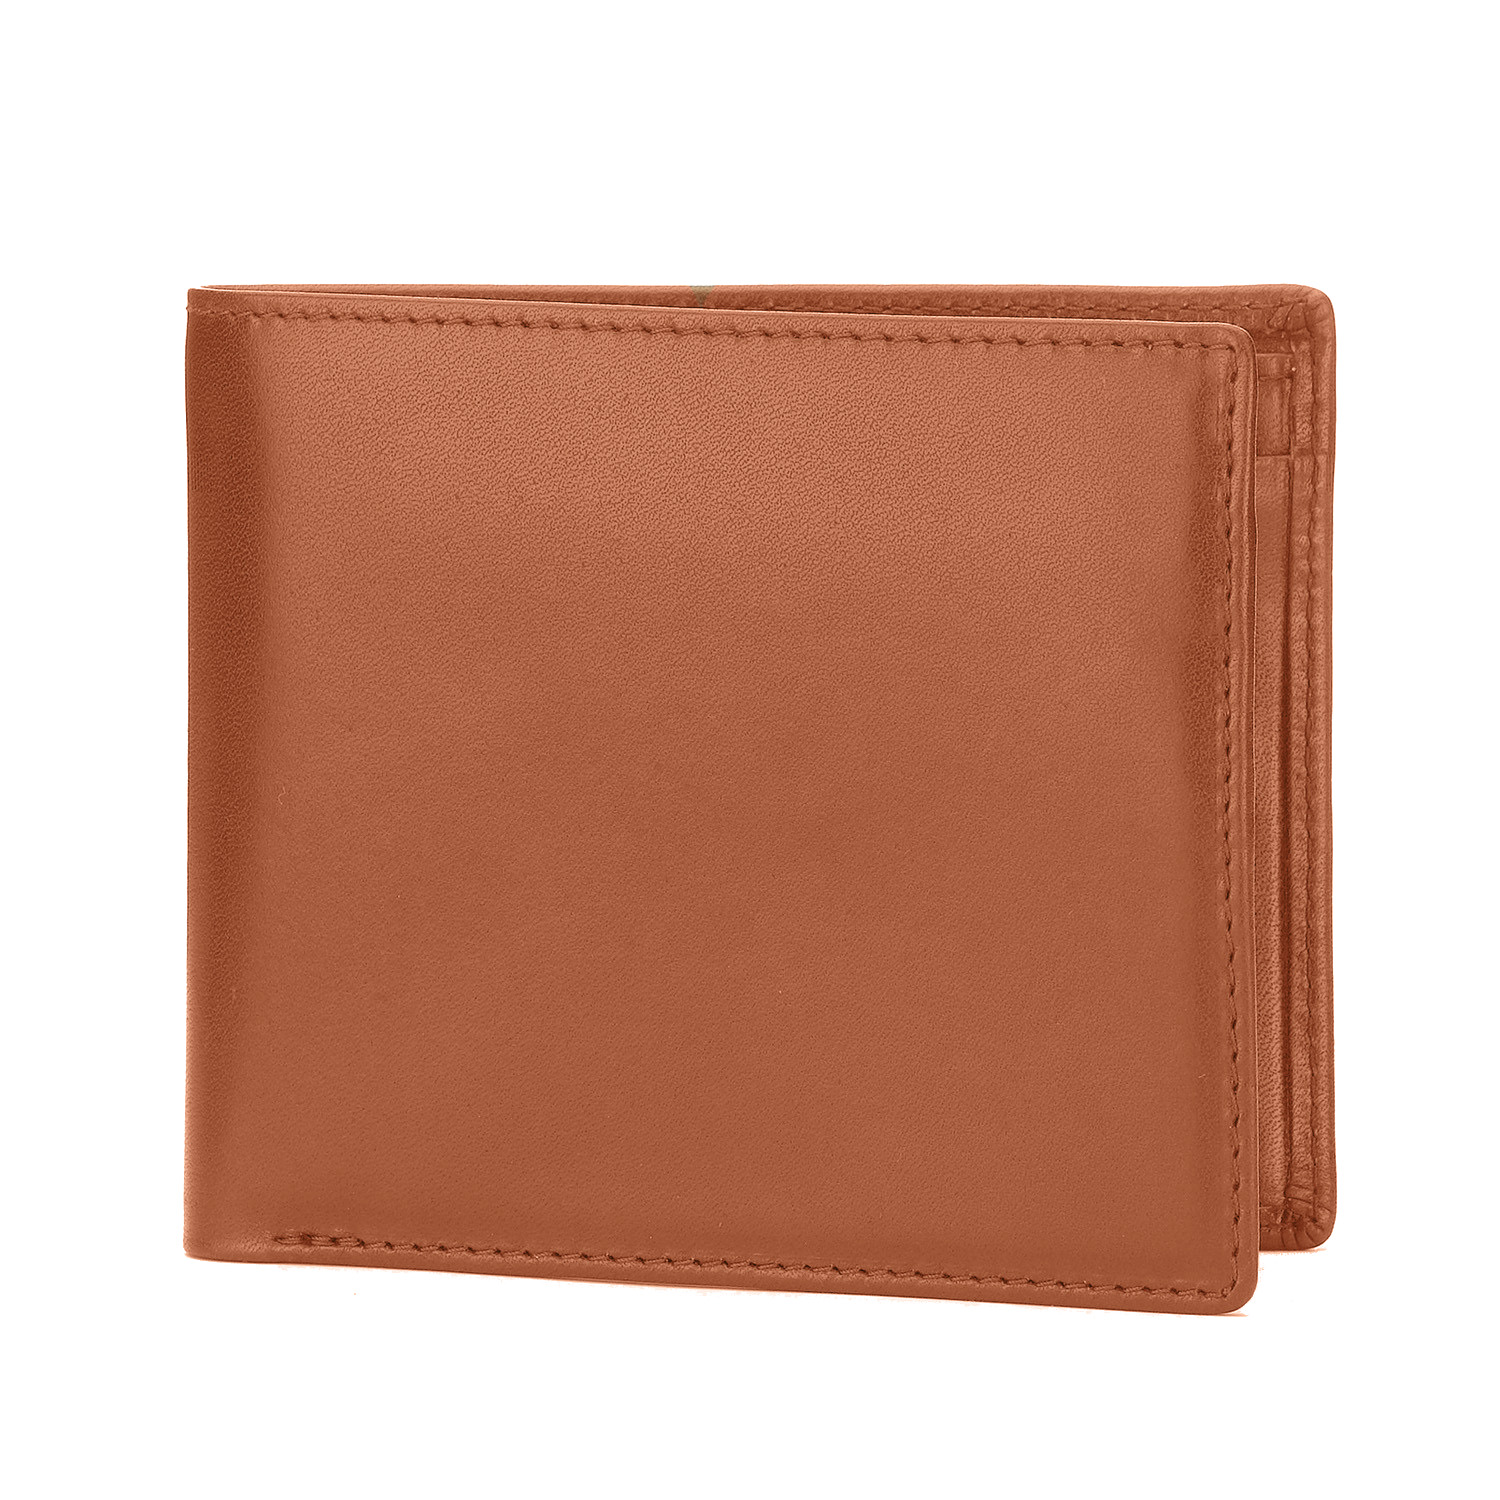 Tusting Leather Wallet in Tan